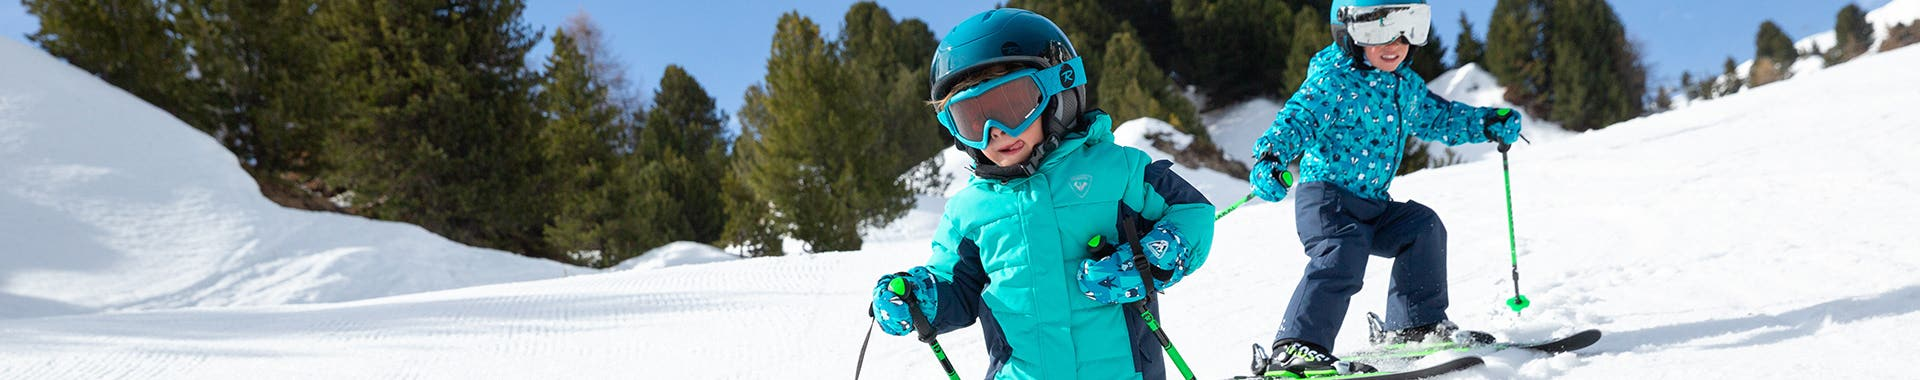 Kids ski accessories - girls